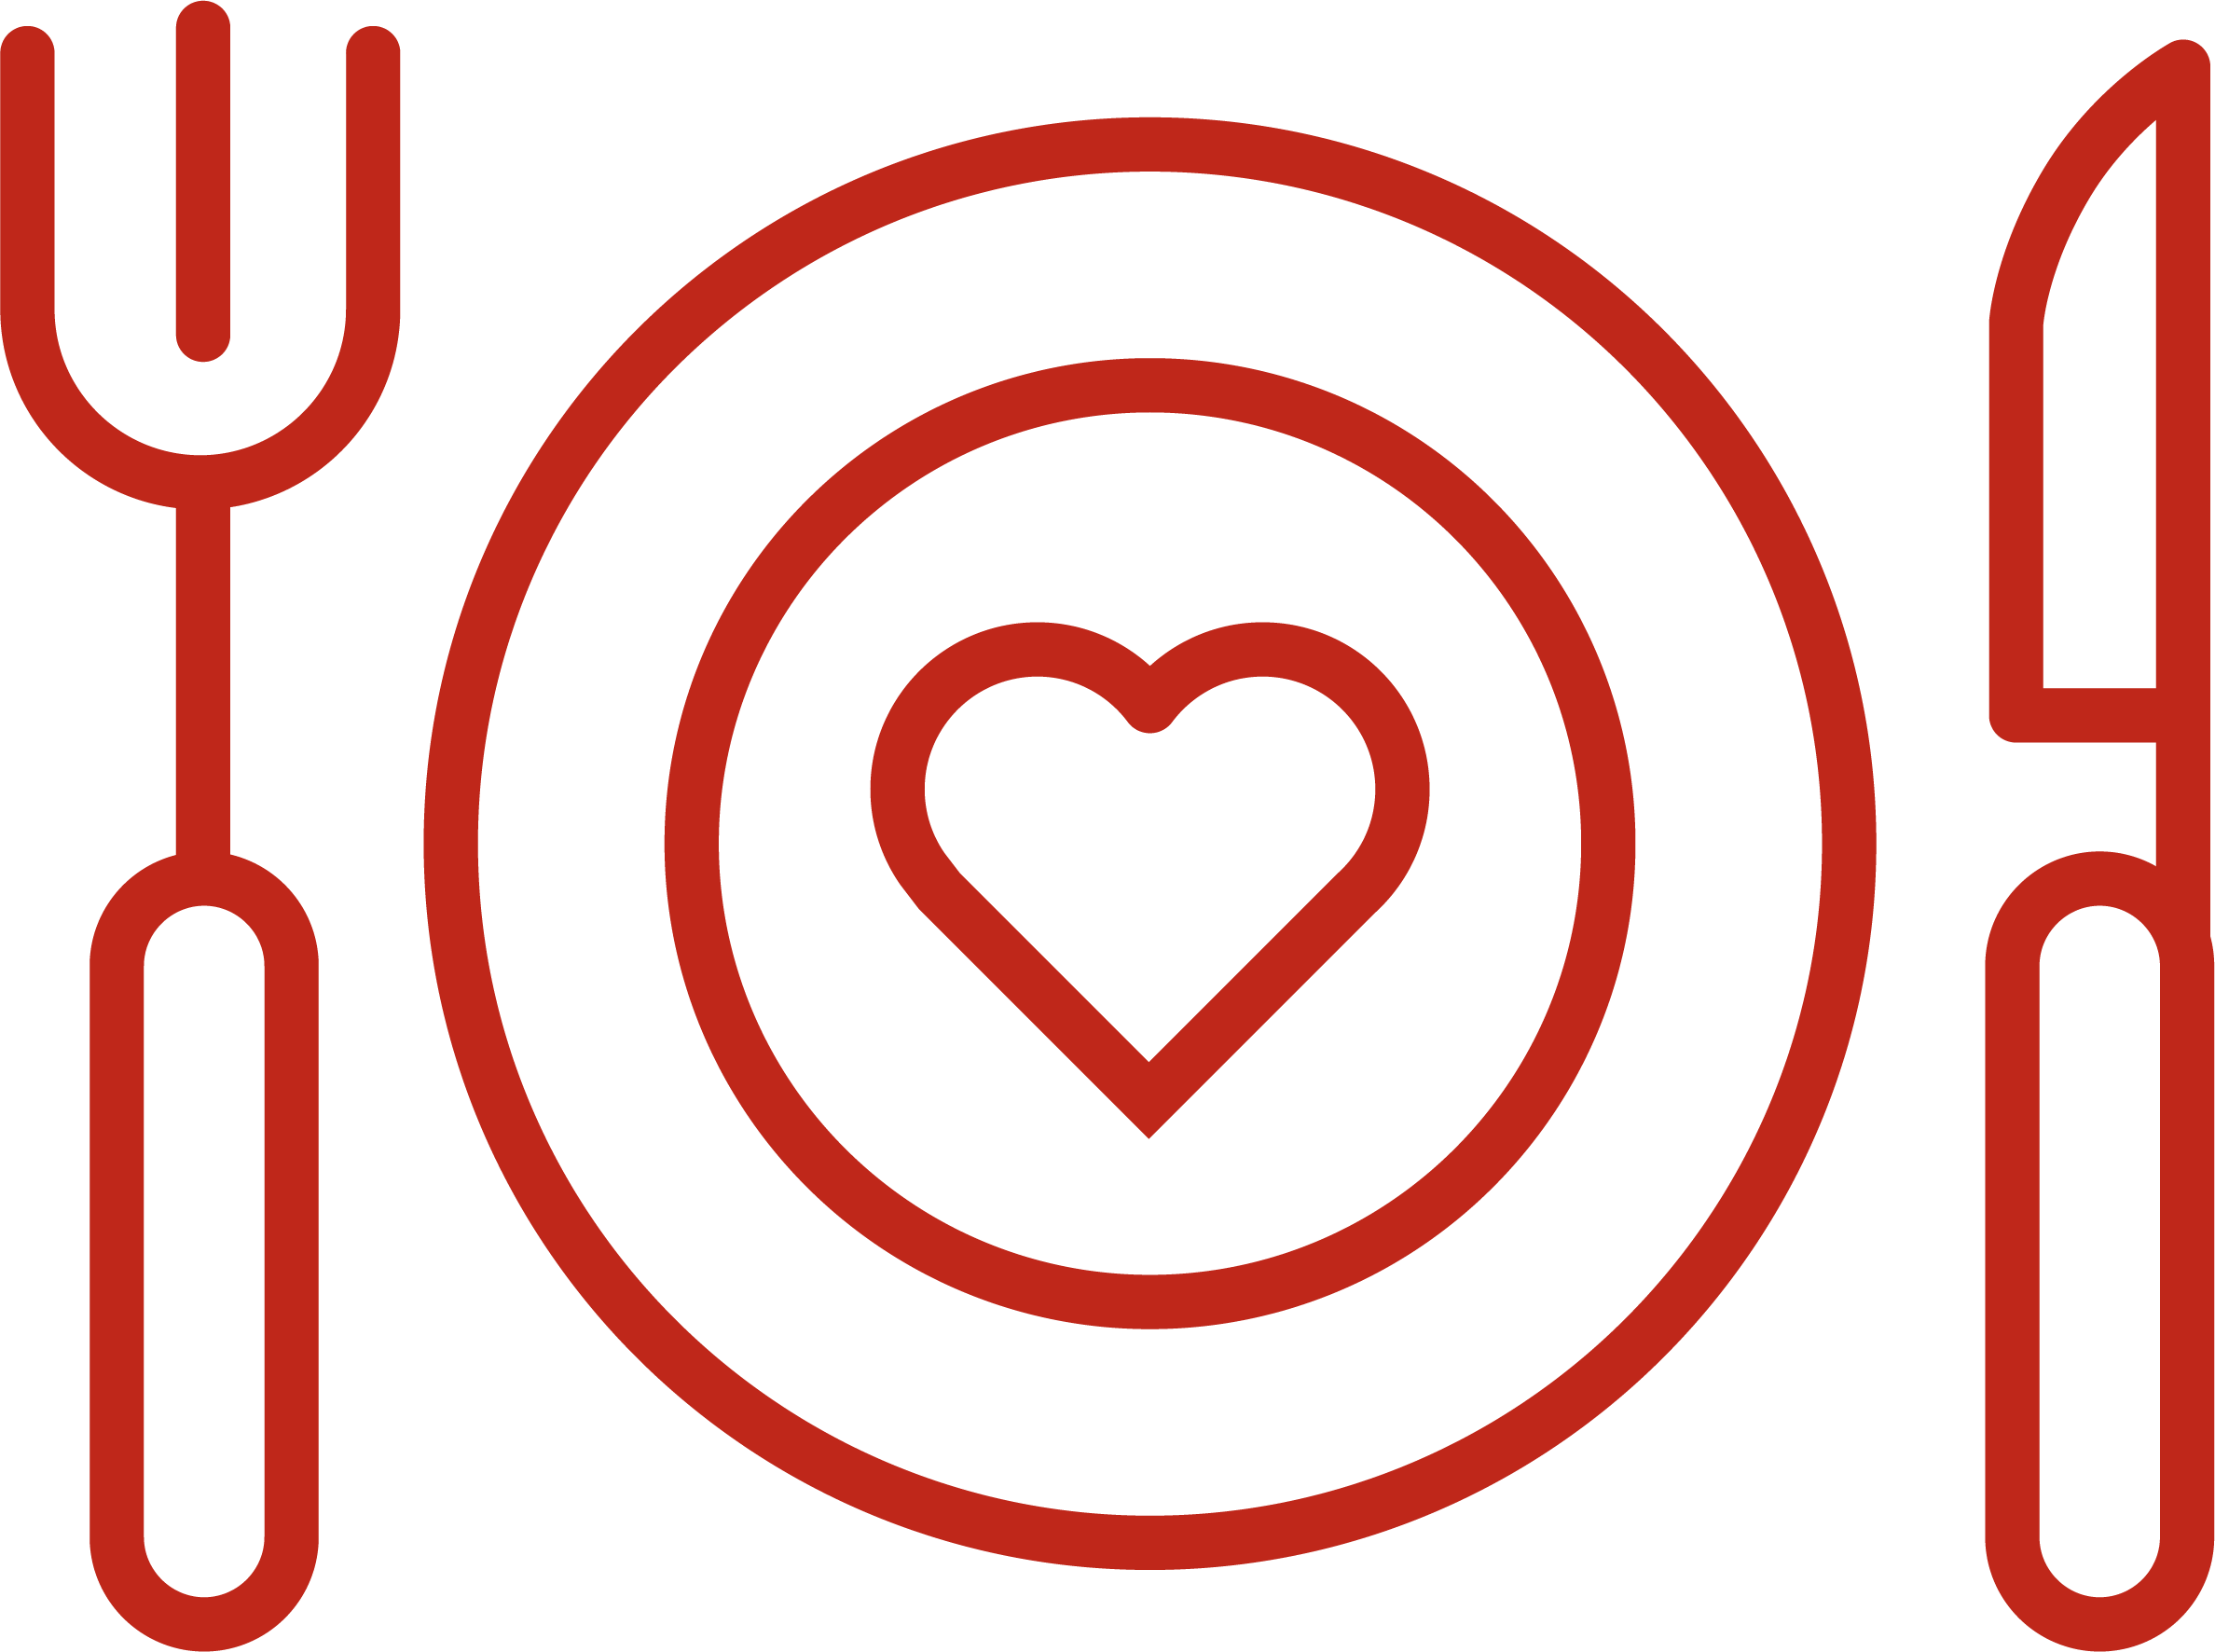 Fork-Heart-Knife-icon